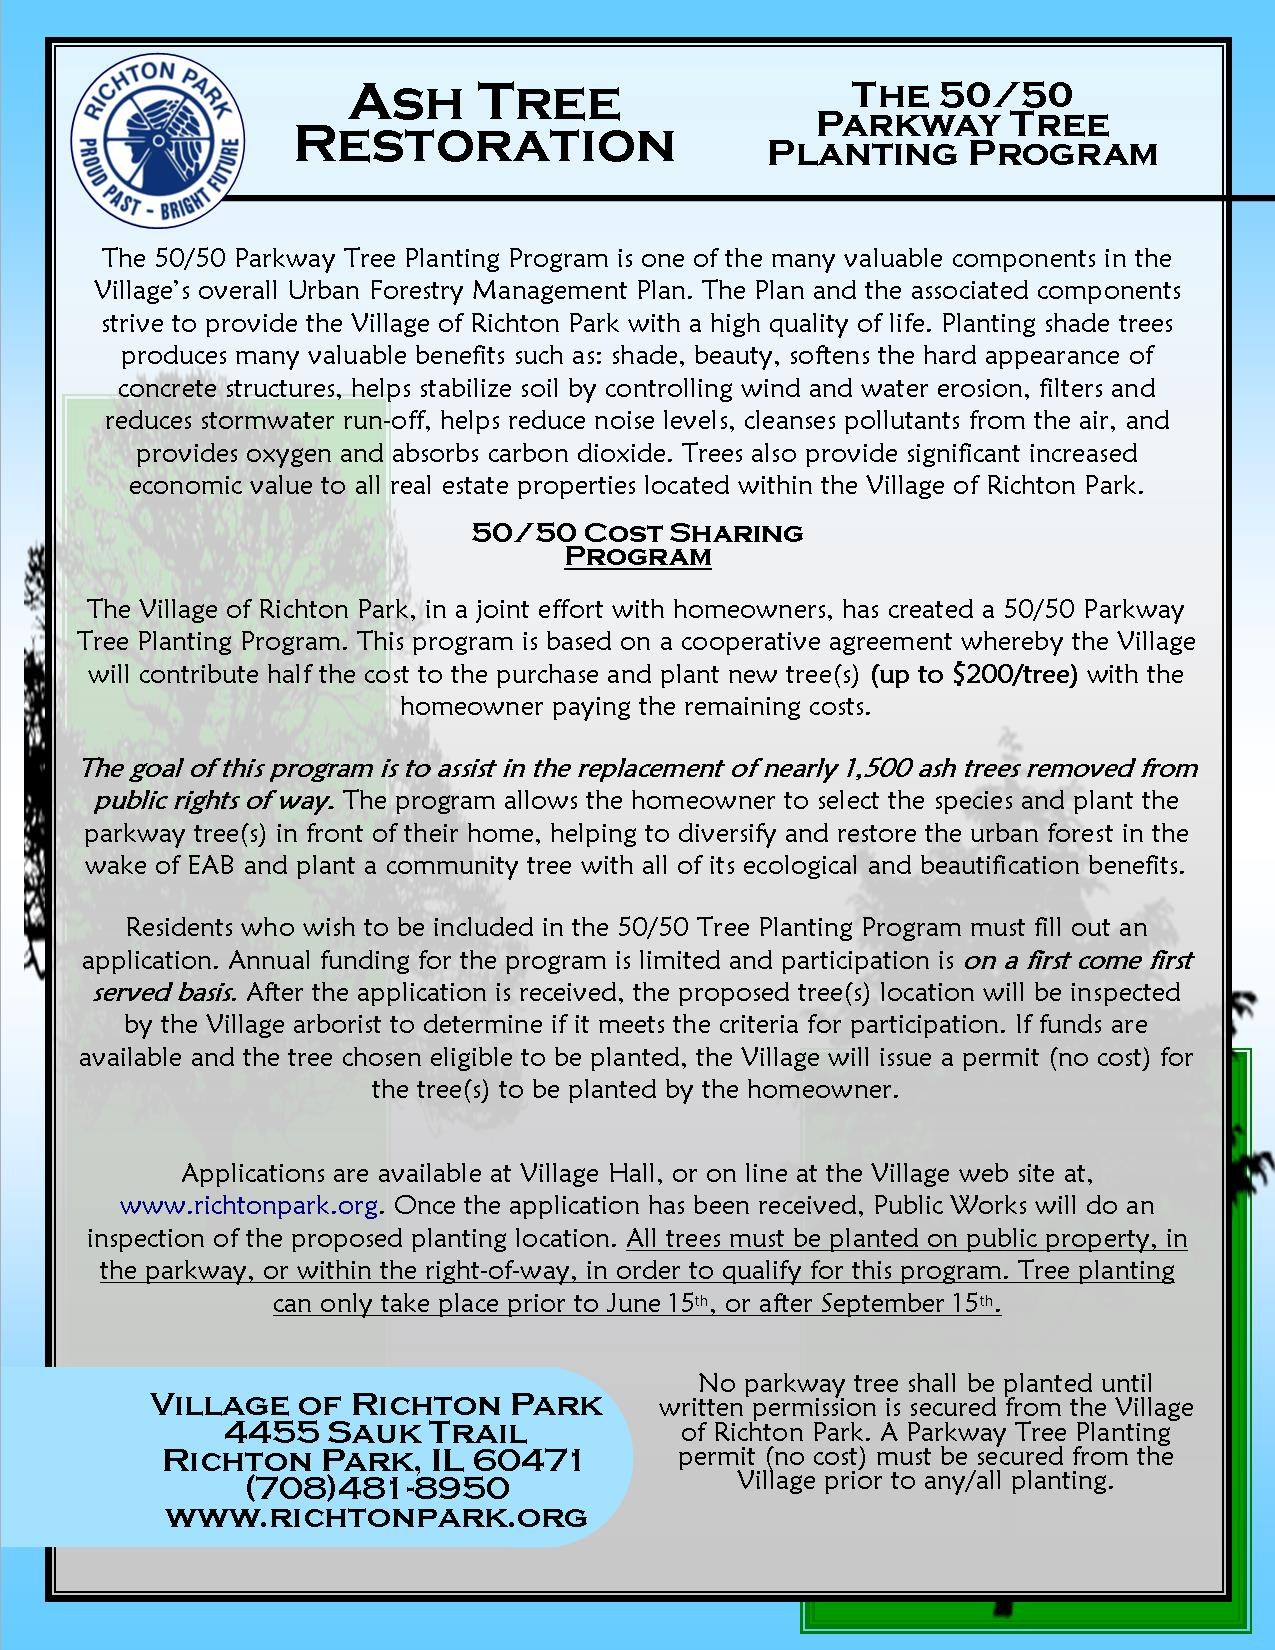 5050 Parkway Tree Planting Program Synopsis.jpg